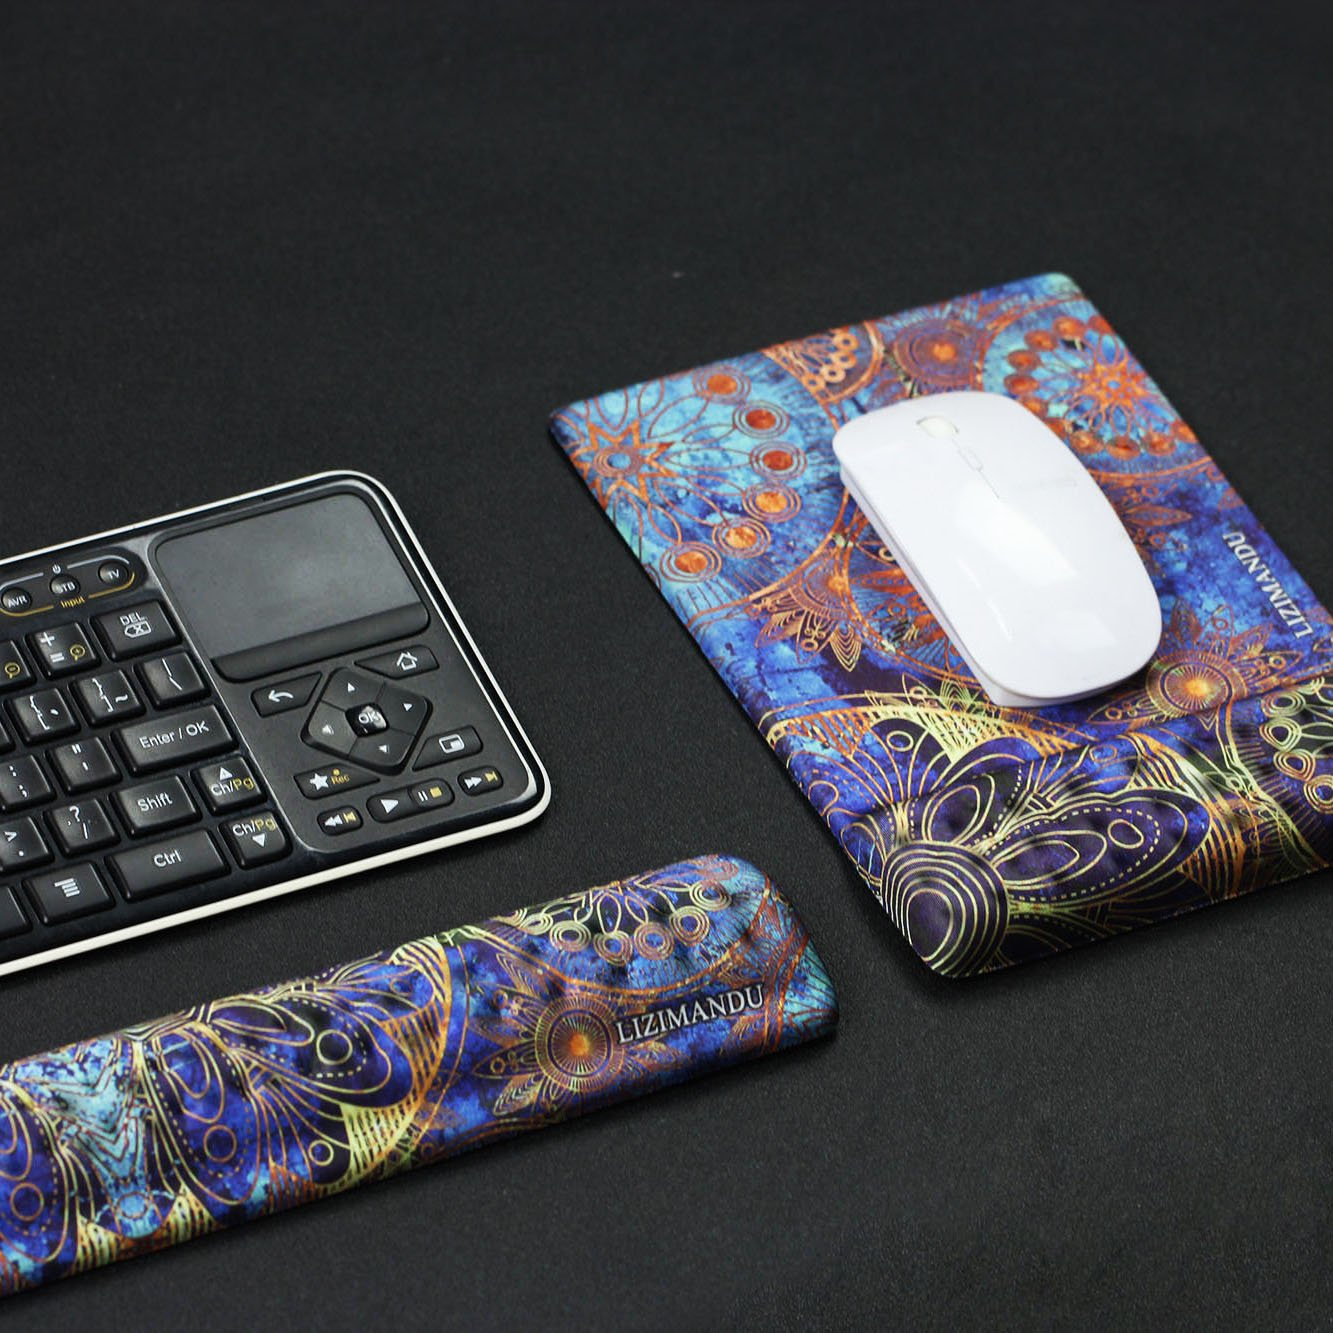 Cheliz Keyboard Wrist Rest Pad and Mouse Wrist Rest Support Mouse Pad Blue Purple Flower2 Durable /& Comfortable /& Lightweight for Easy Typing /& Pain Relief-Ergonomic Support